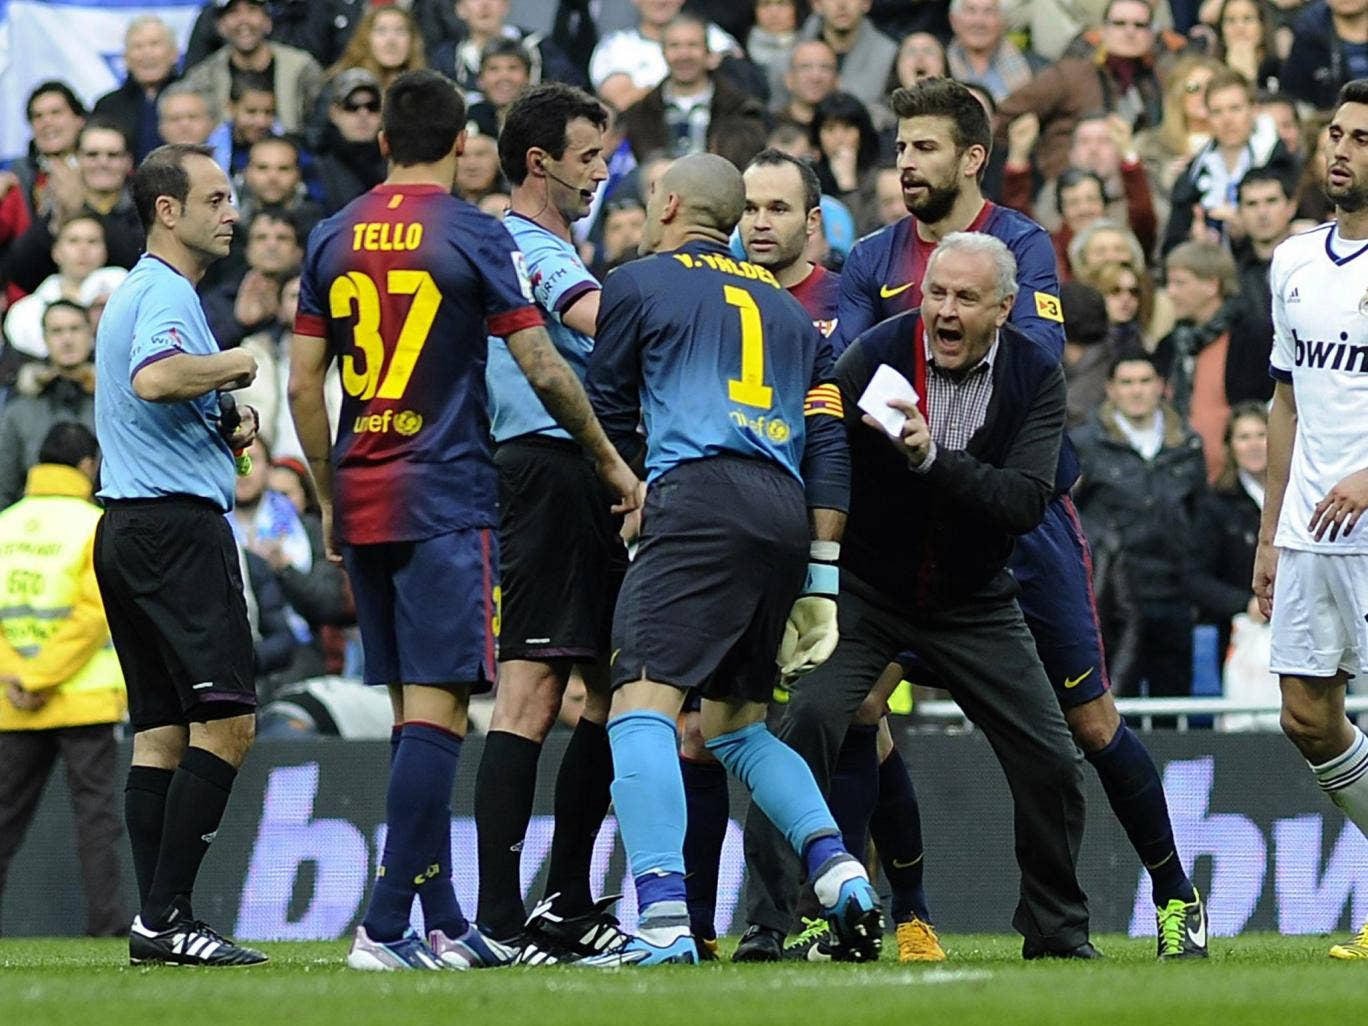 Victor Valdes confronts the referee